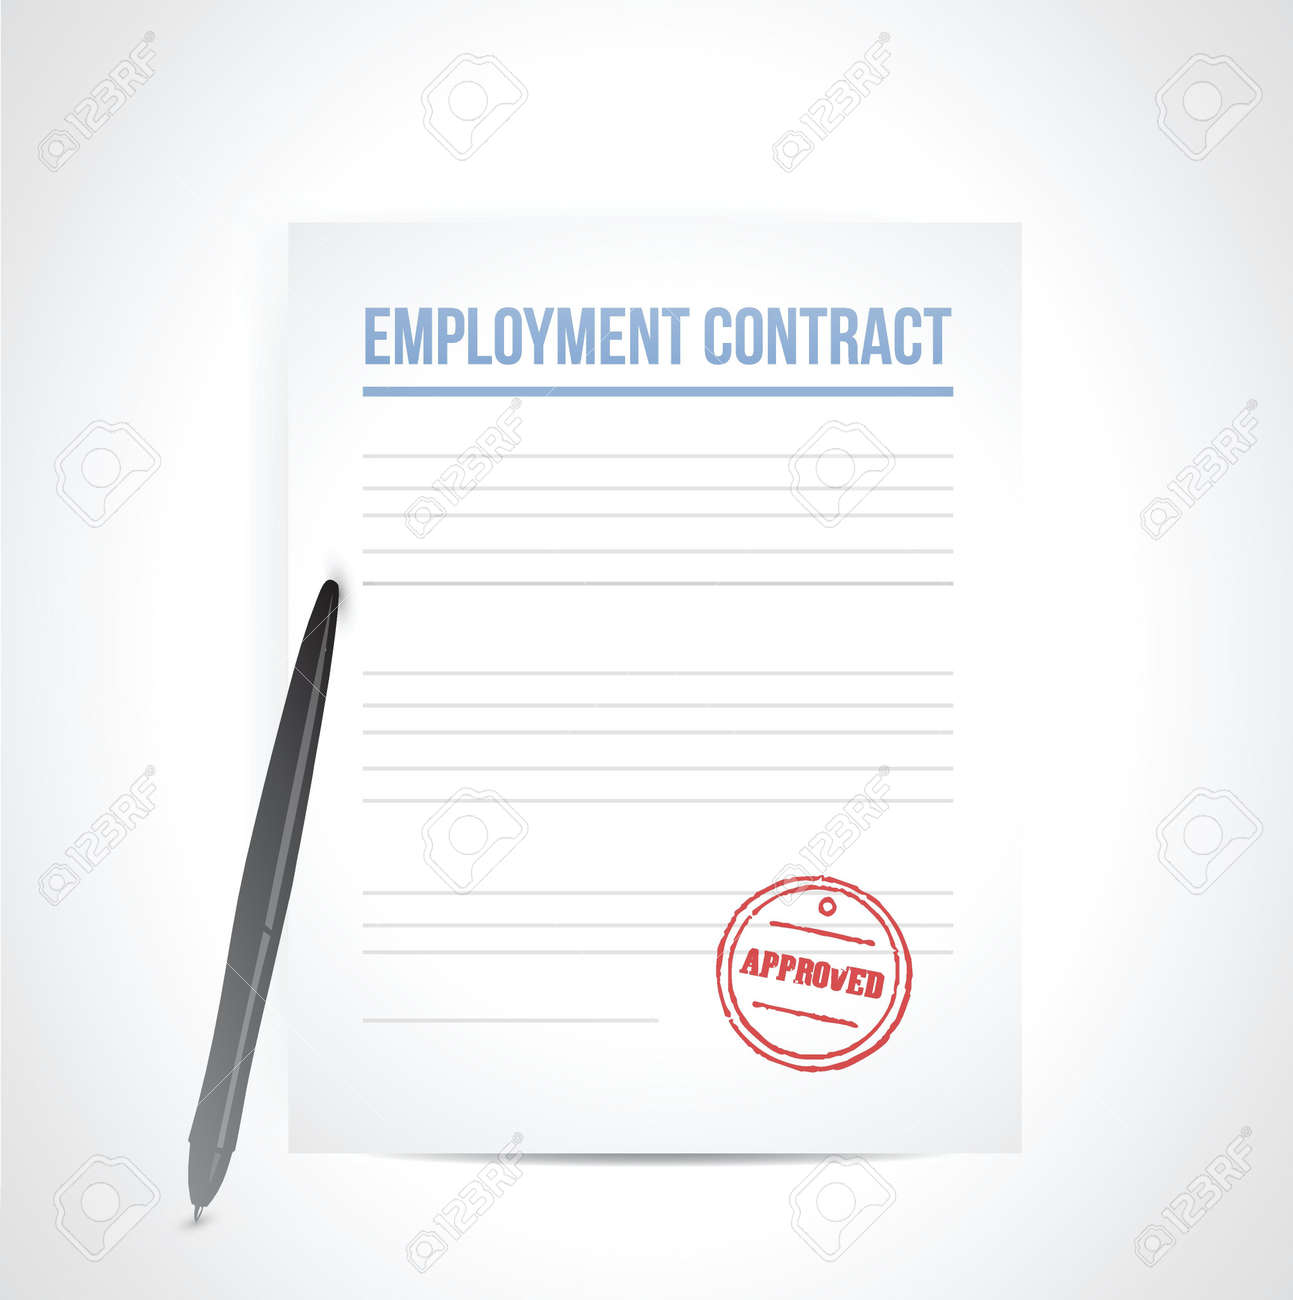 employment contrat illustration design over a white background Stock Vector - 21942394